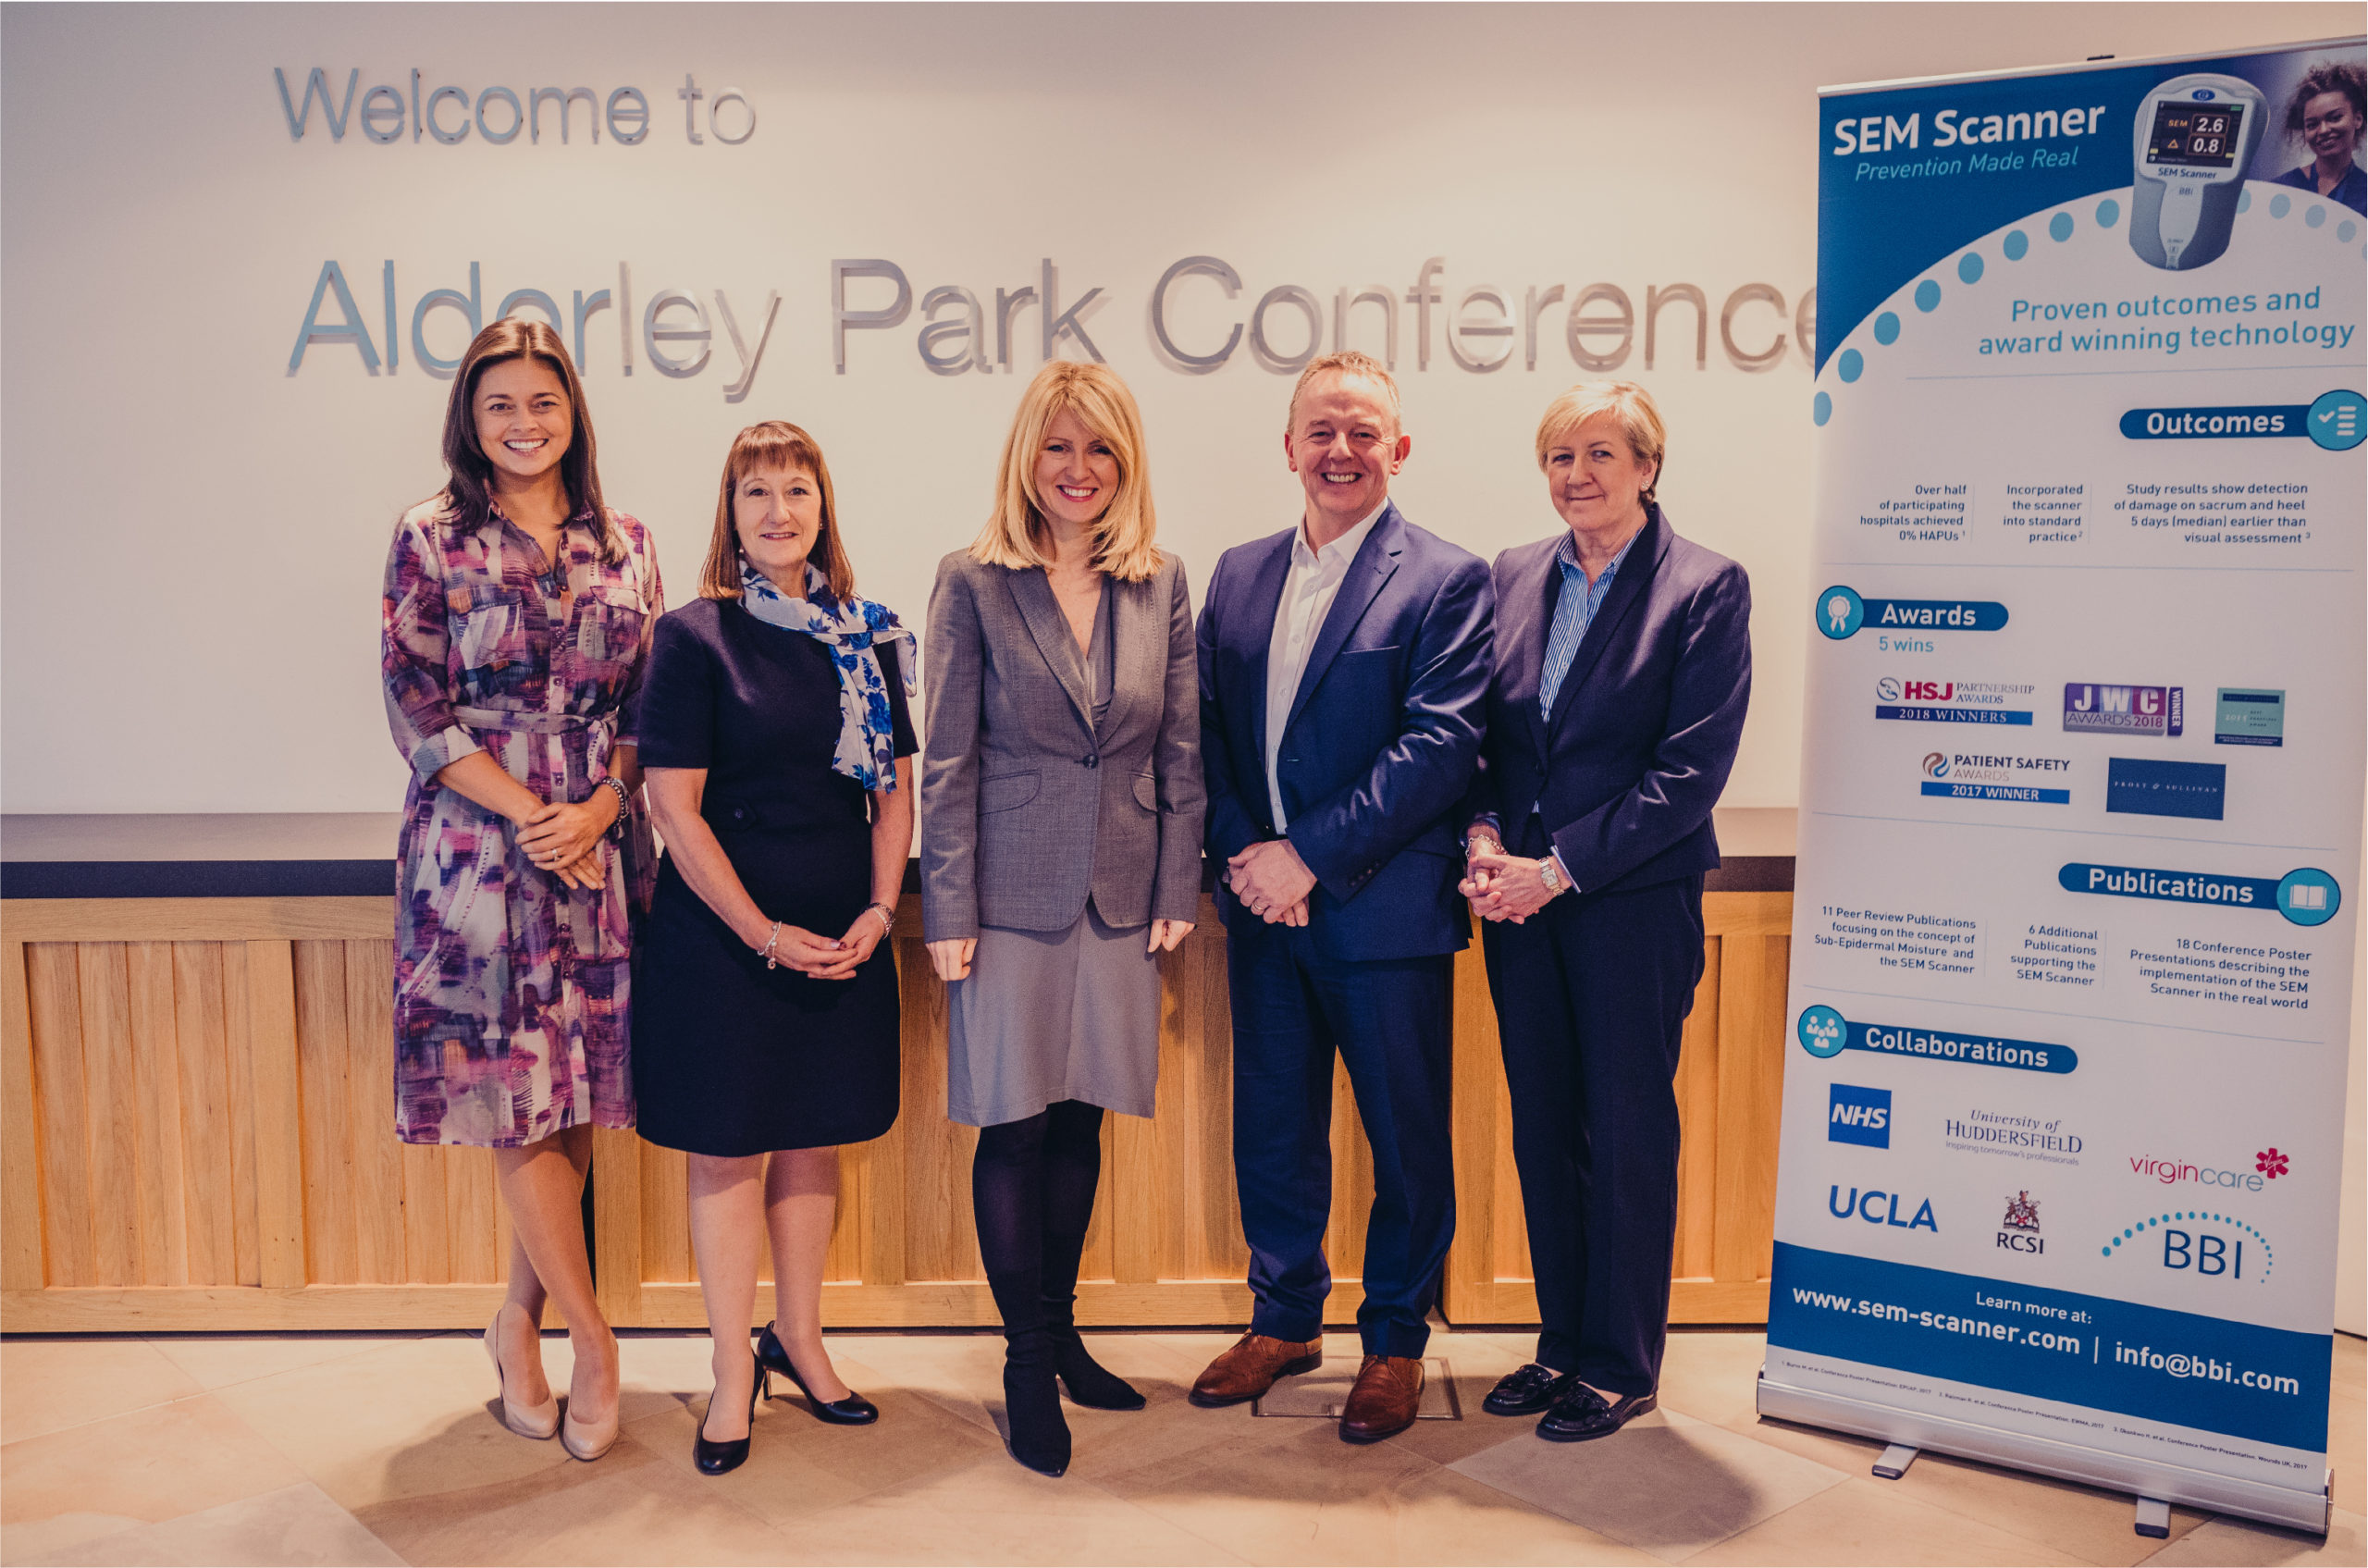 The BBI team were delighted to welcome Esther McVey, Member of Parliament for Tatton, UK, to Alderley Park recently.